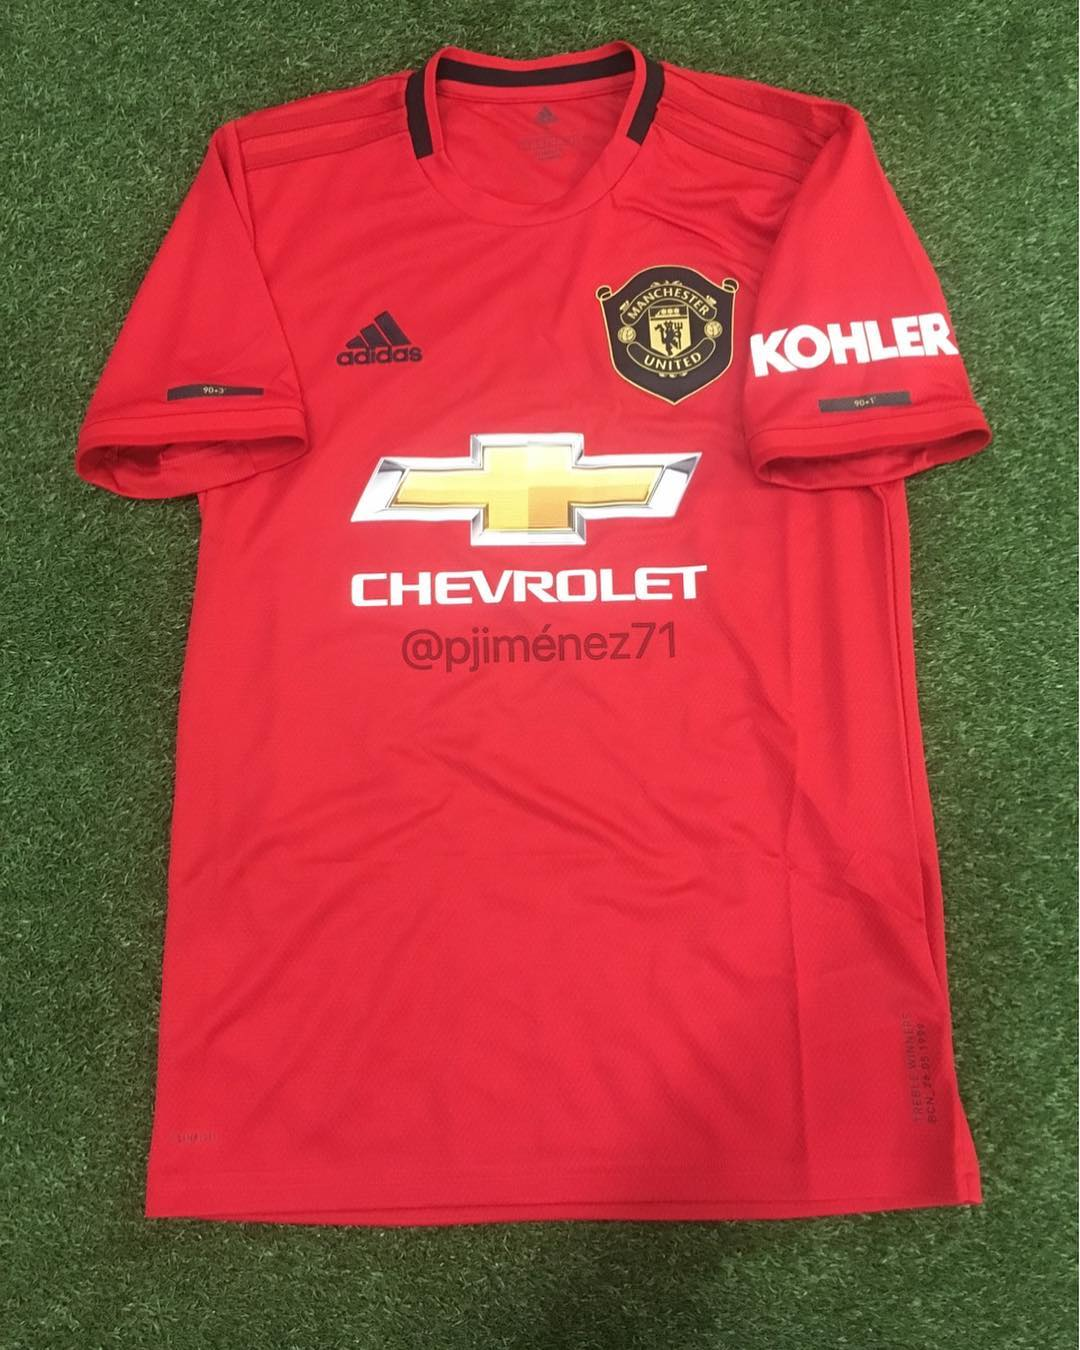 best service 7ad84 24ea6 Manchester United Kits 2018/2019 | Page 25 | RedCafe.net